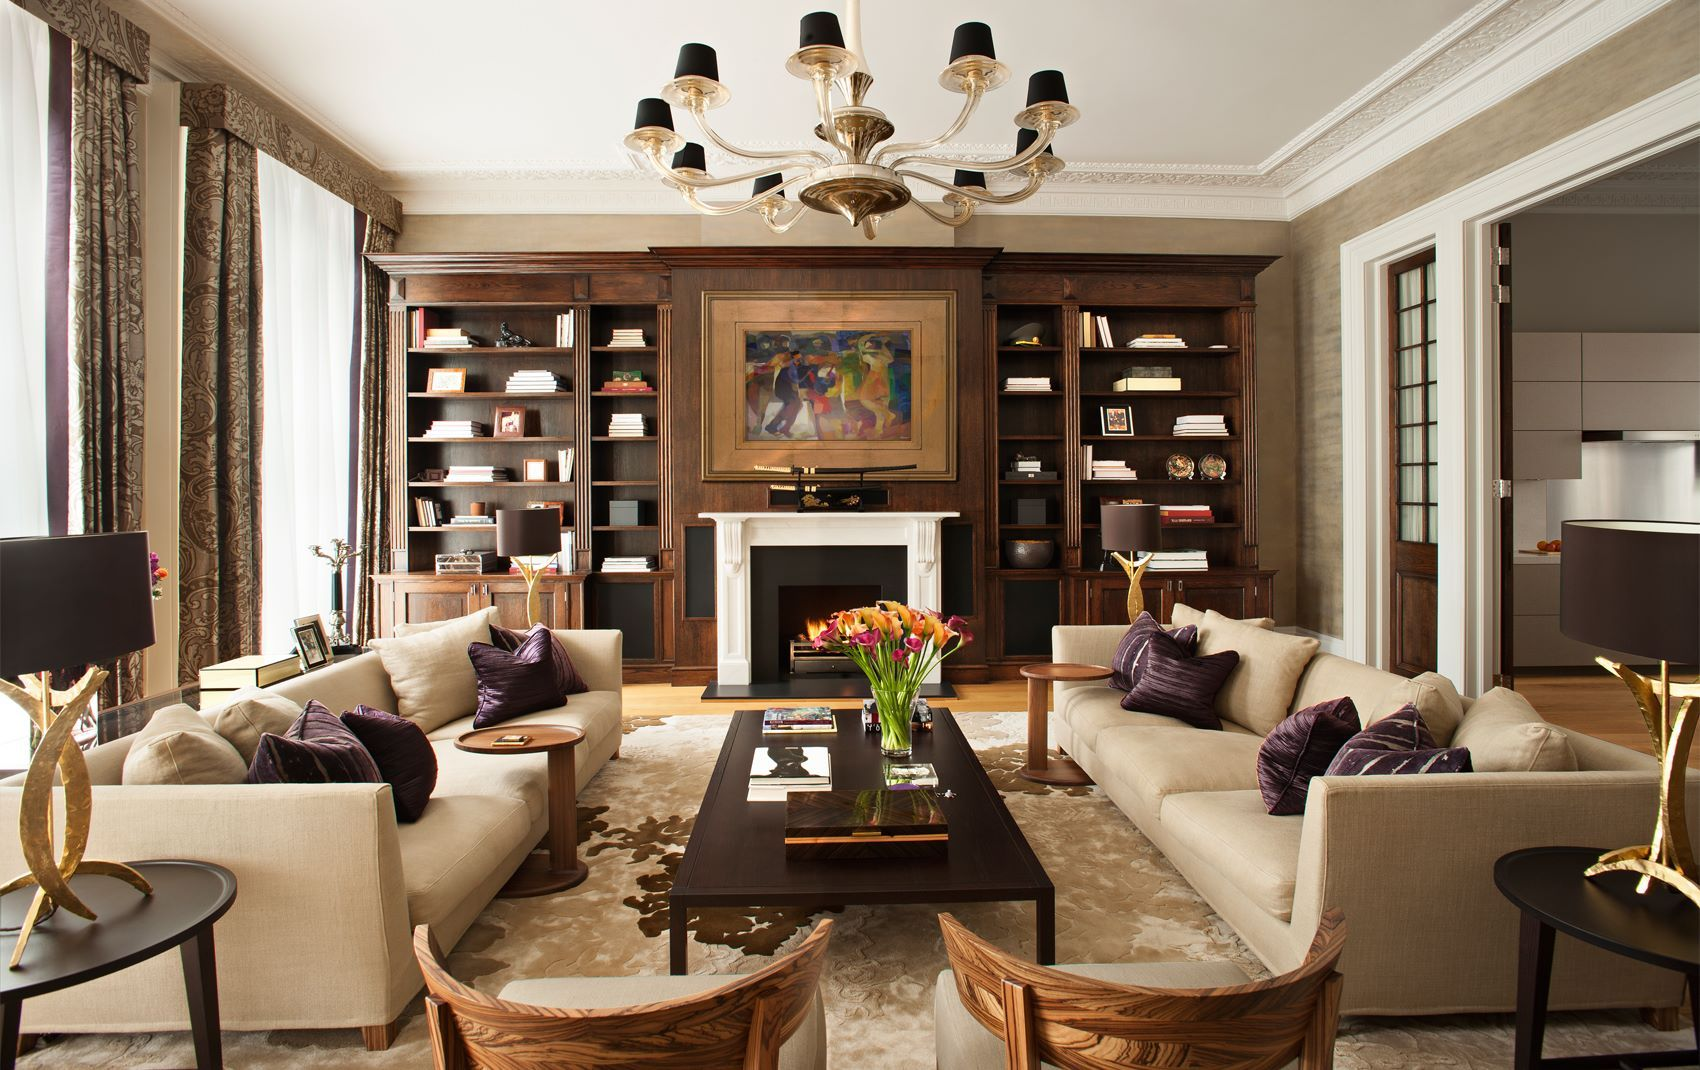 Kensington mansion flat gallery design lieux et int rieur for High end interior designers london